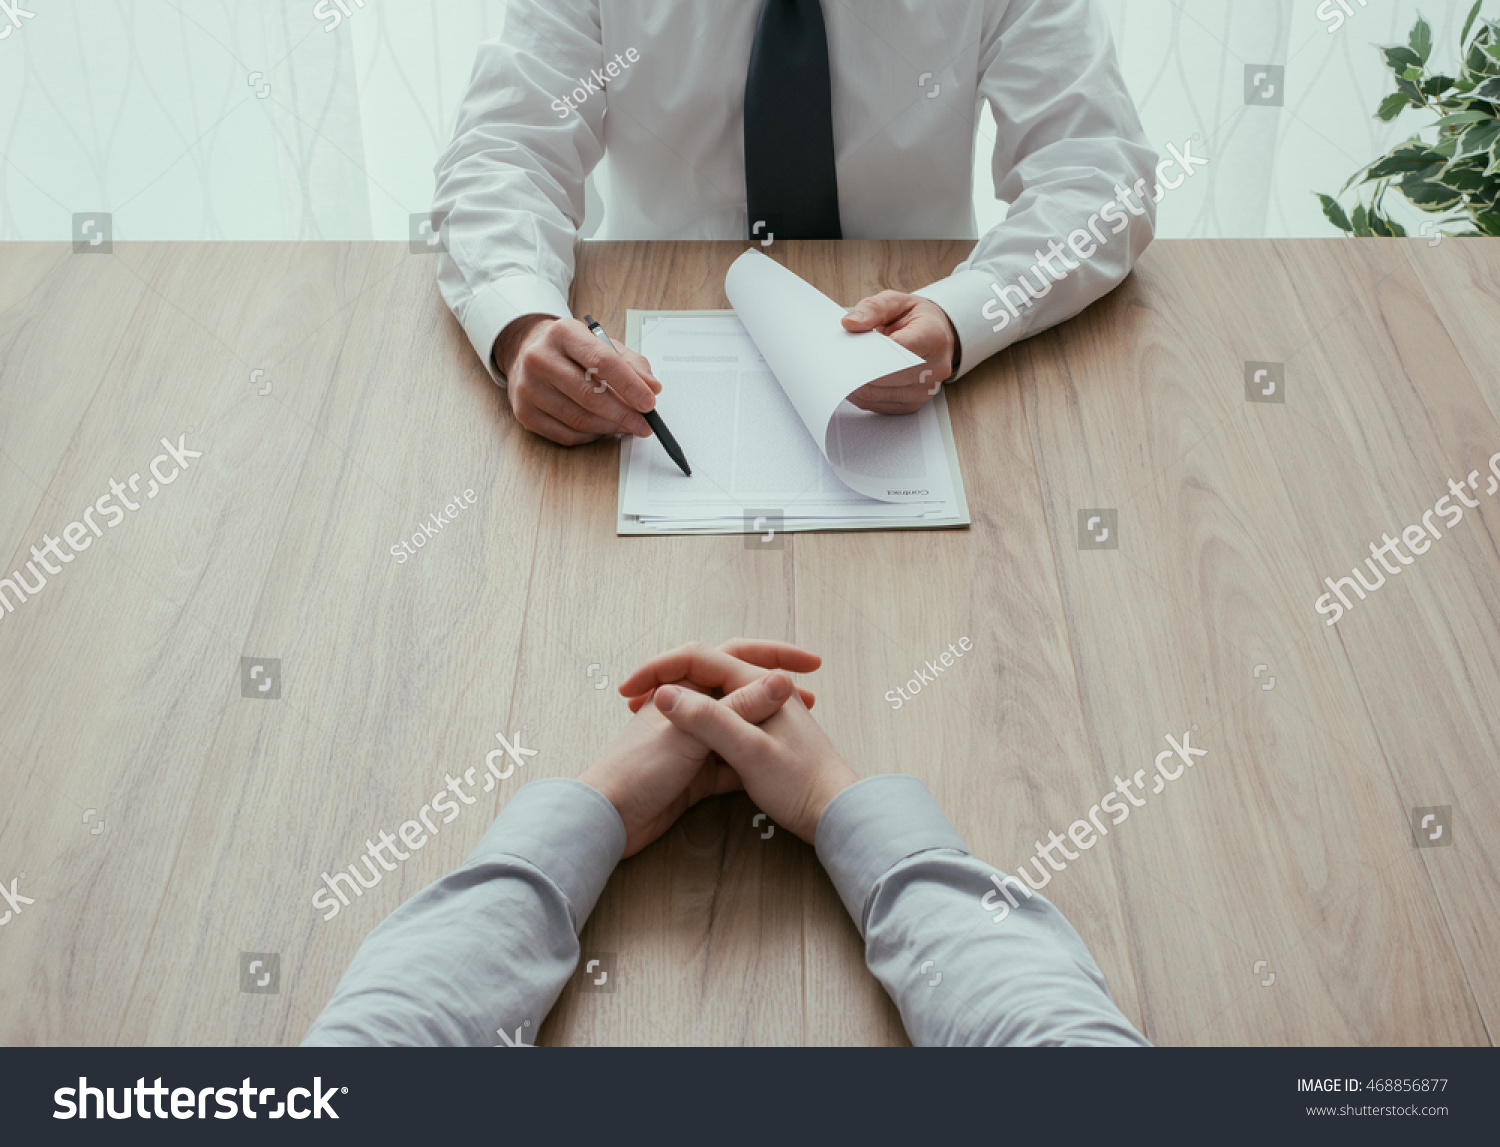 Examiner reading a resume during a job interview, employment and recruitment concept, point of view shot #468856877